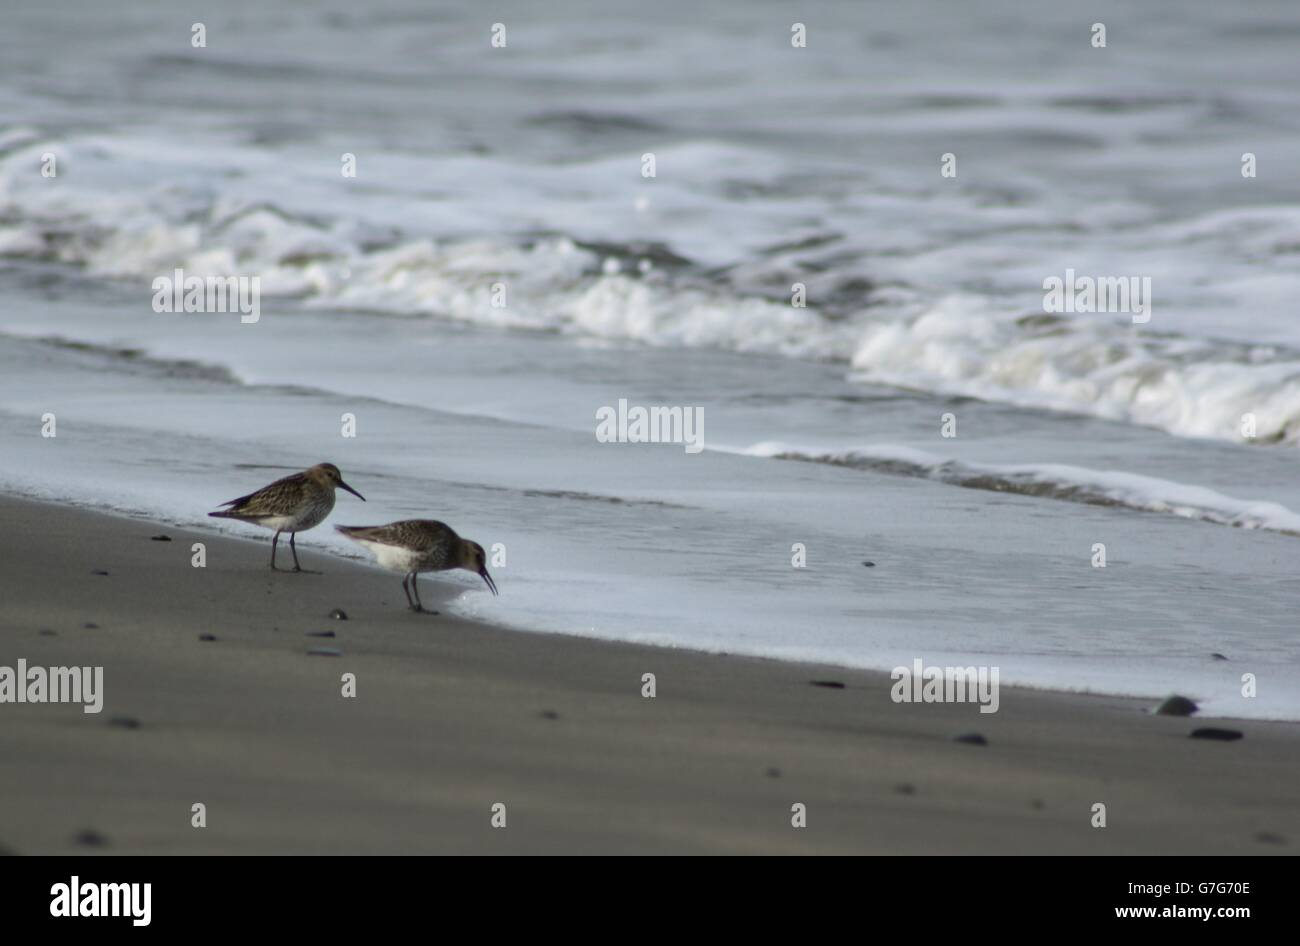 Sandpipers on Shore Line - Stock Image